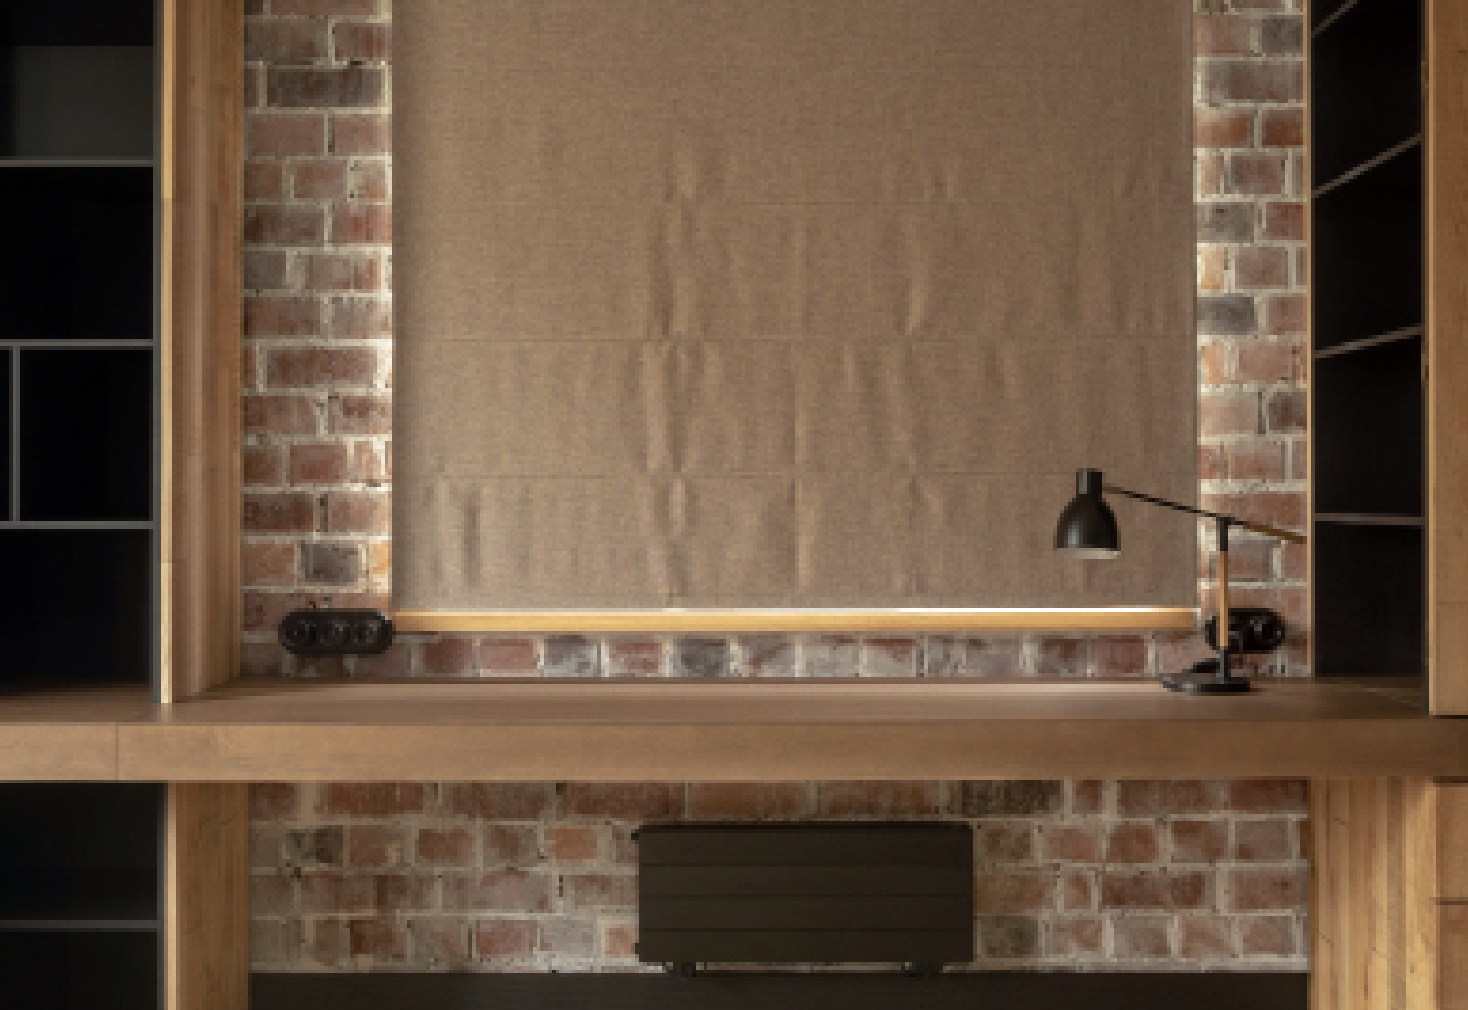 A DEDICATED WORK SPACE IN YOUR HOME HELPS YOU SET ASIDE DISTRACTIONS & FOCUS ON WORK